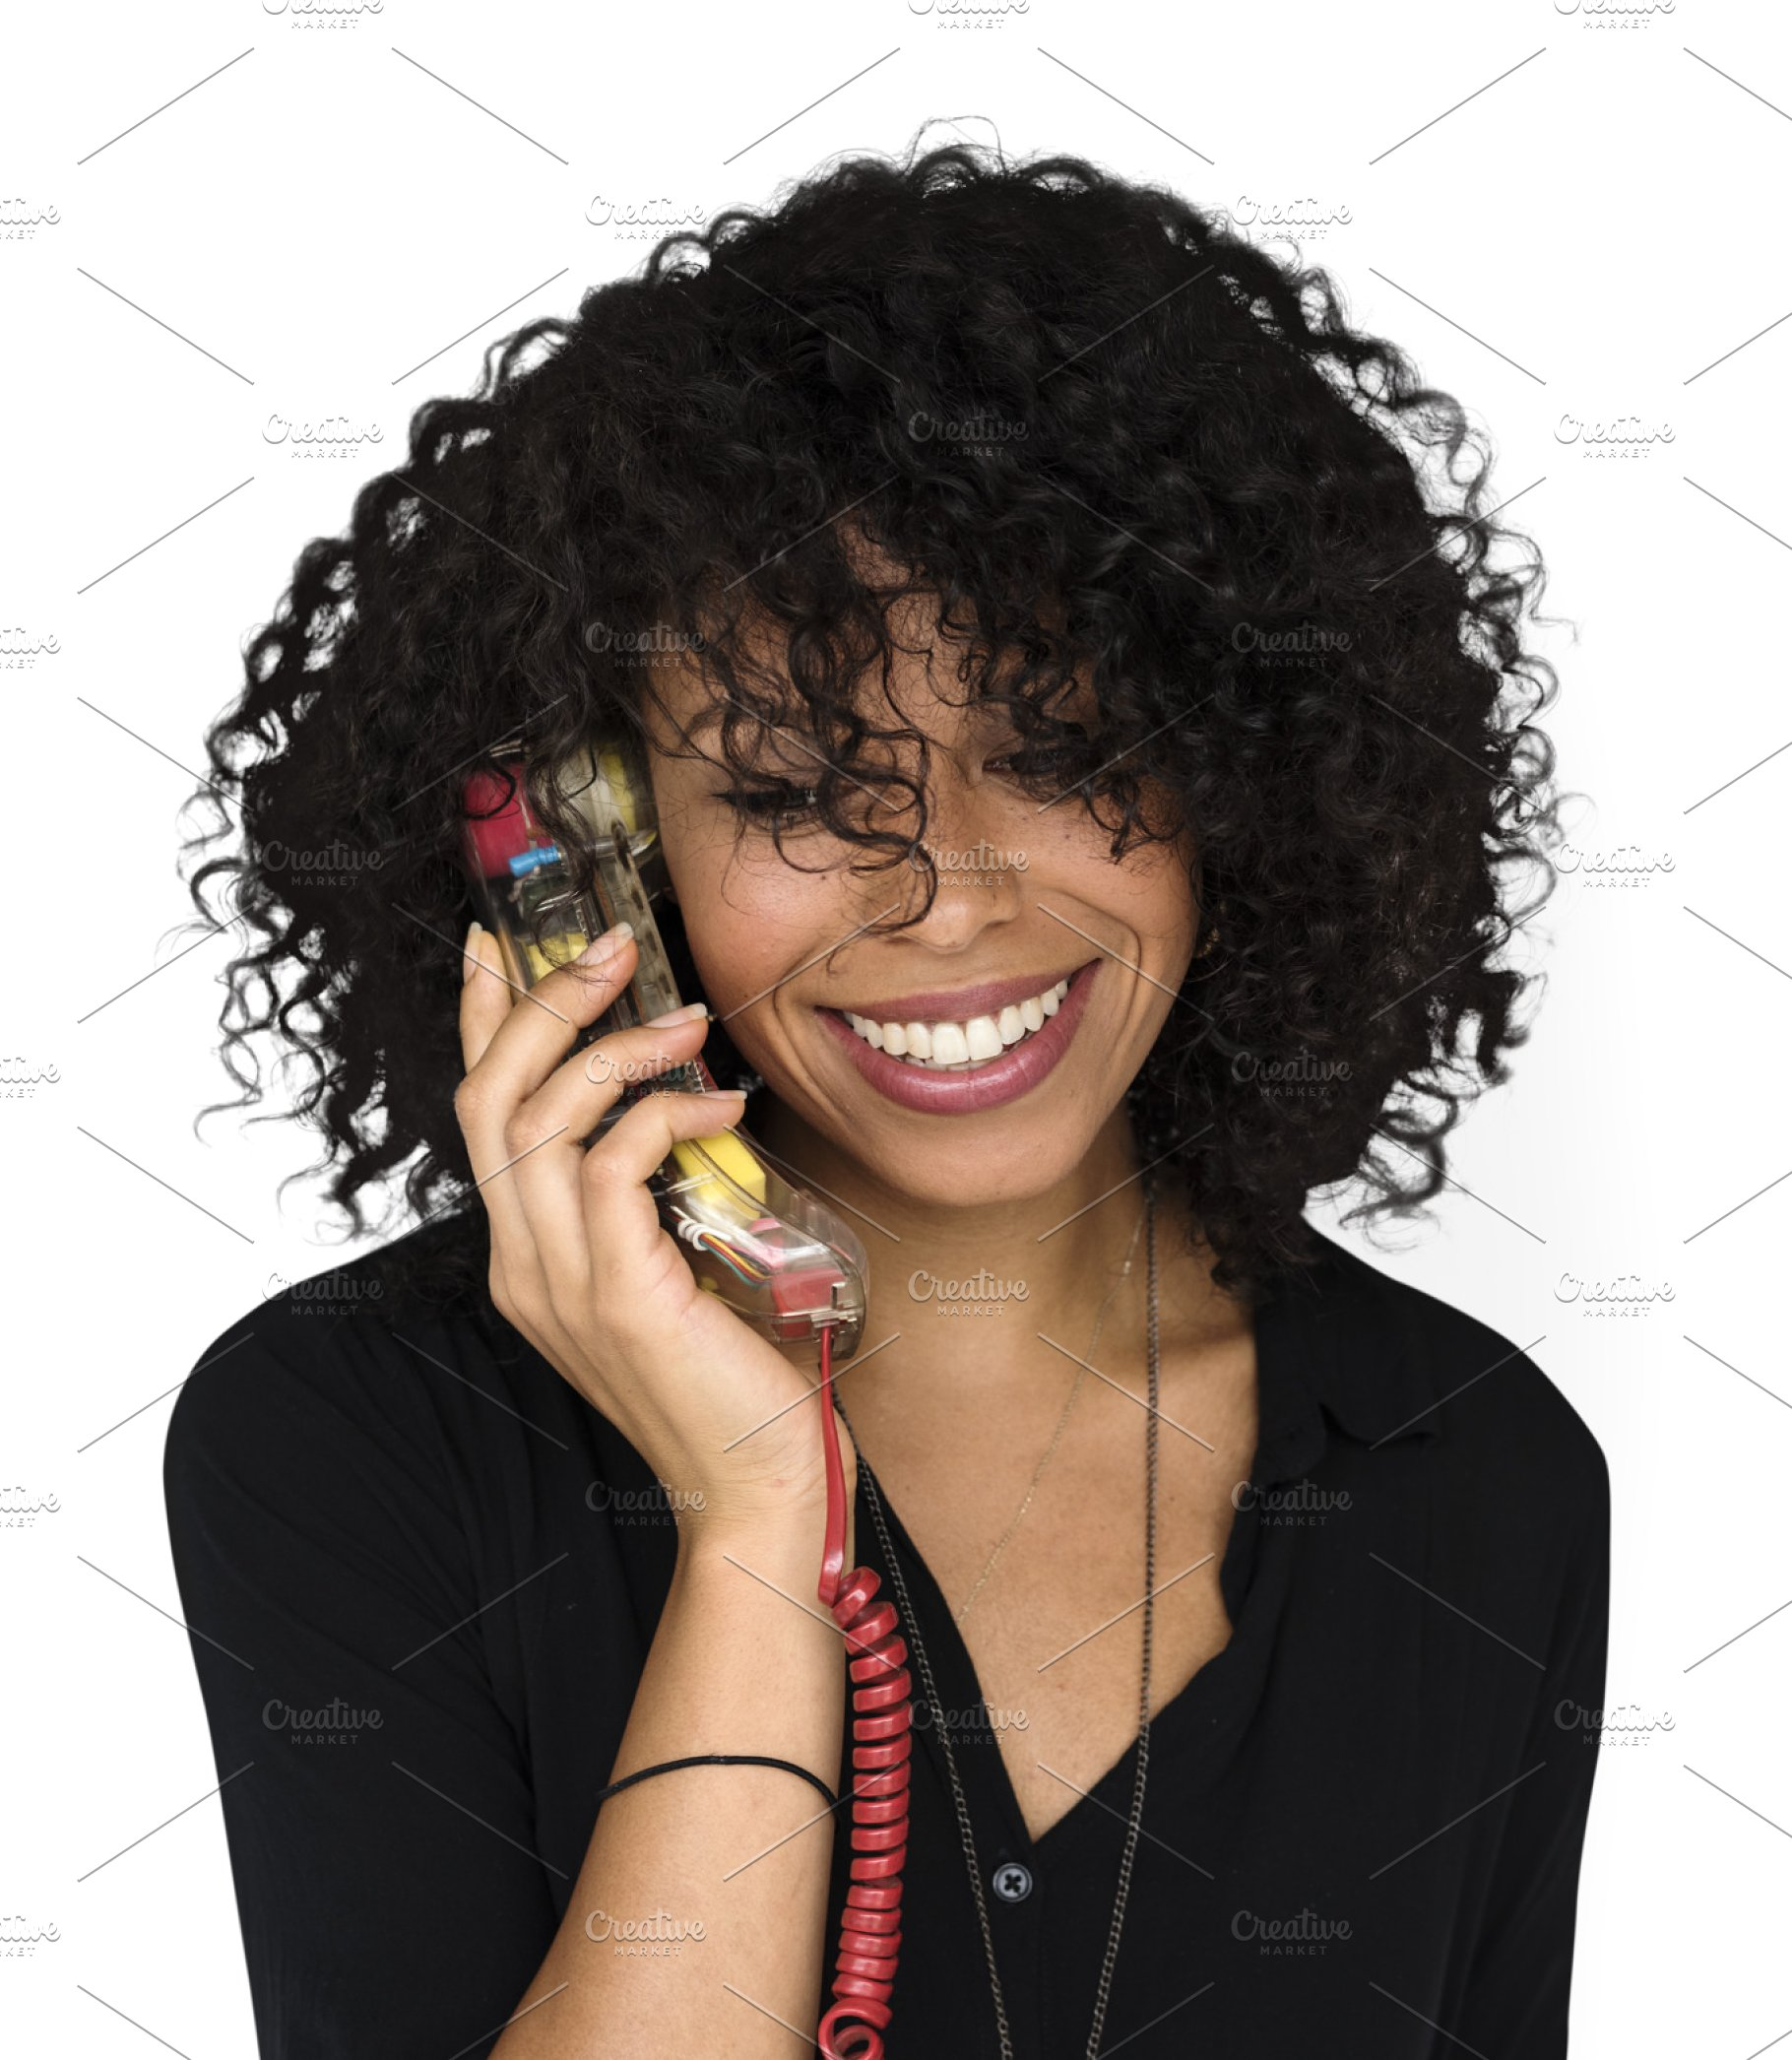 Woman Talking On Phone Png - woman talking on phone (PNG) ~ Photos ~ Creative Market